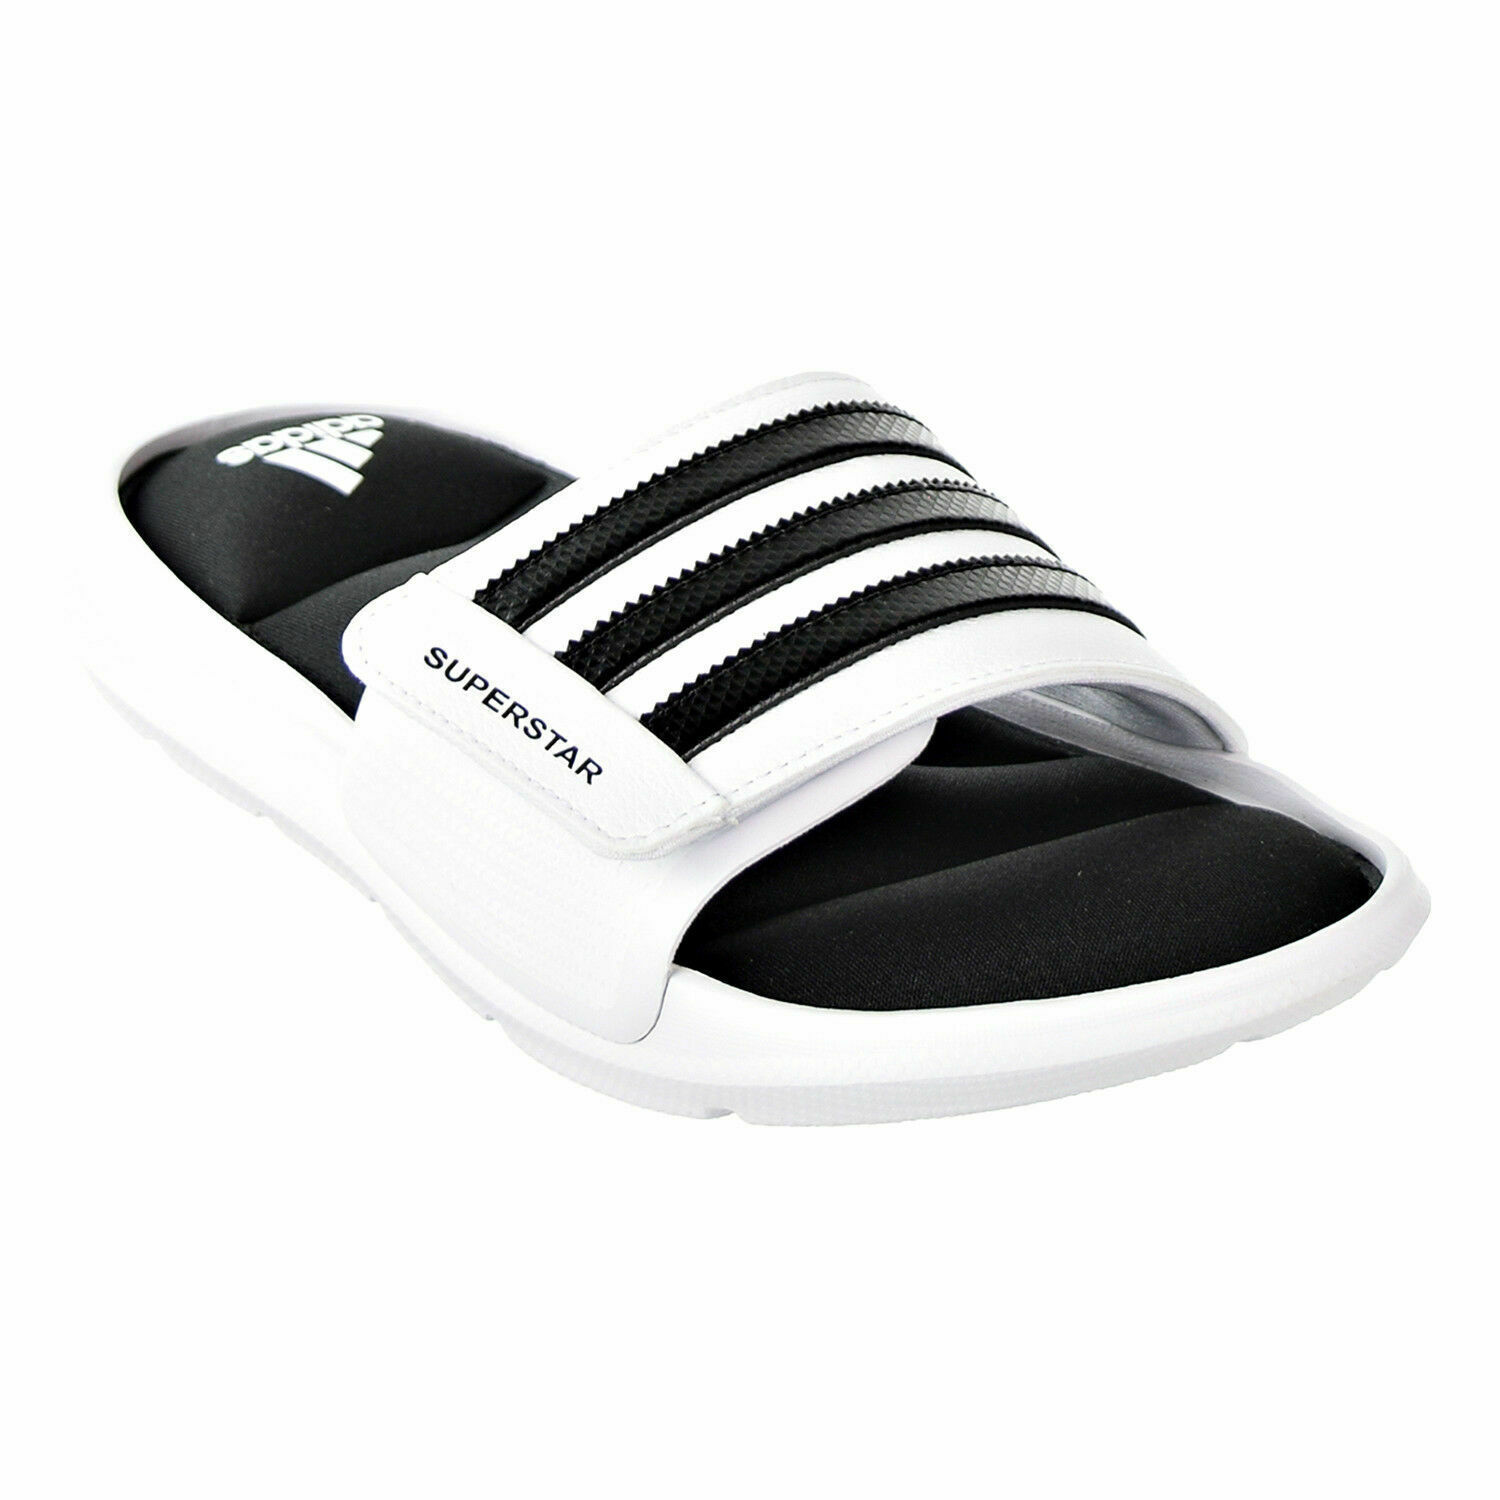 ADIDAS SUPERSTAR SURROUND MEMORY FOAM SLIDE SANDALS MEN SHOES WHITE SIZE 15 NEW